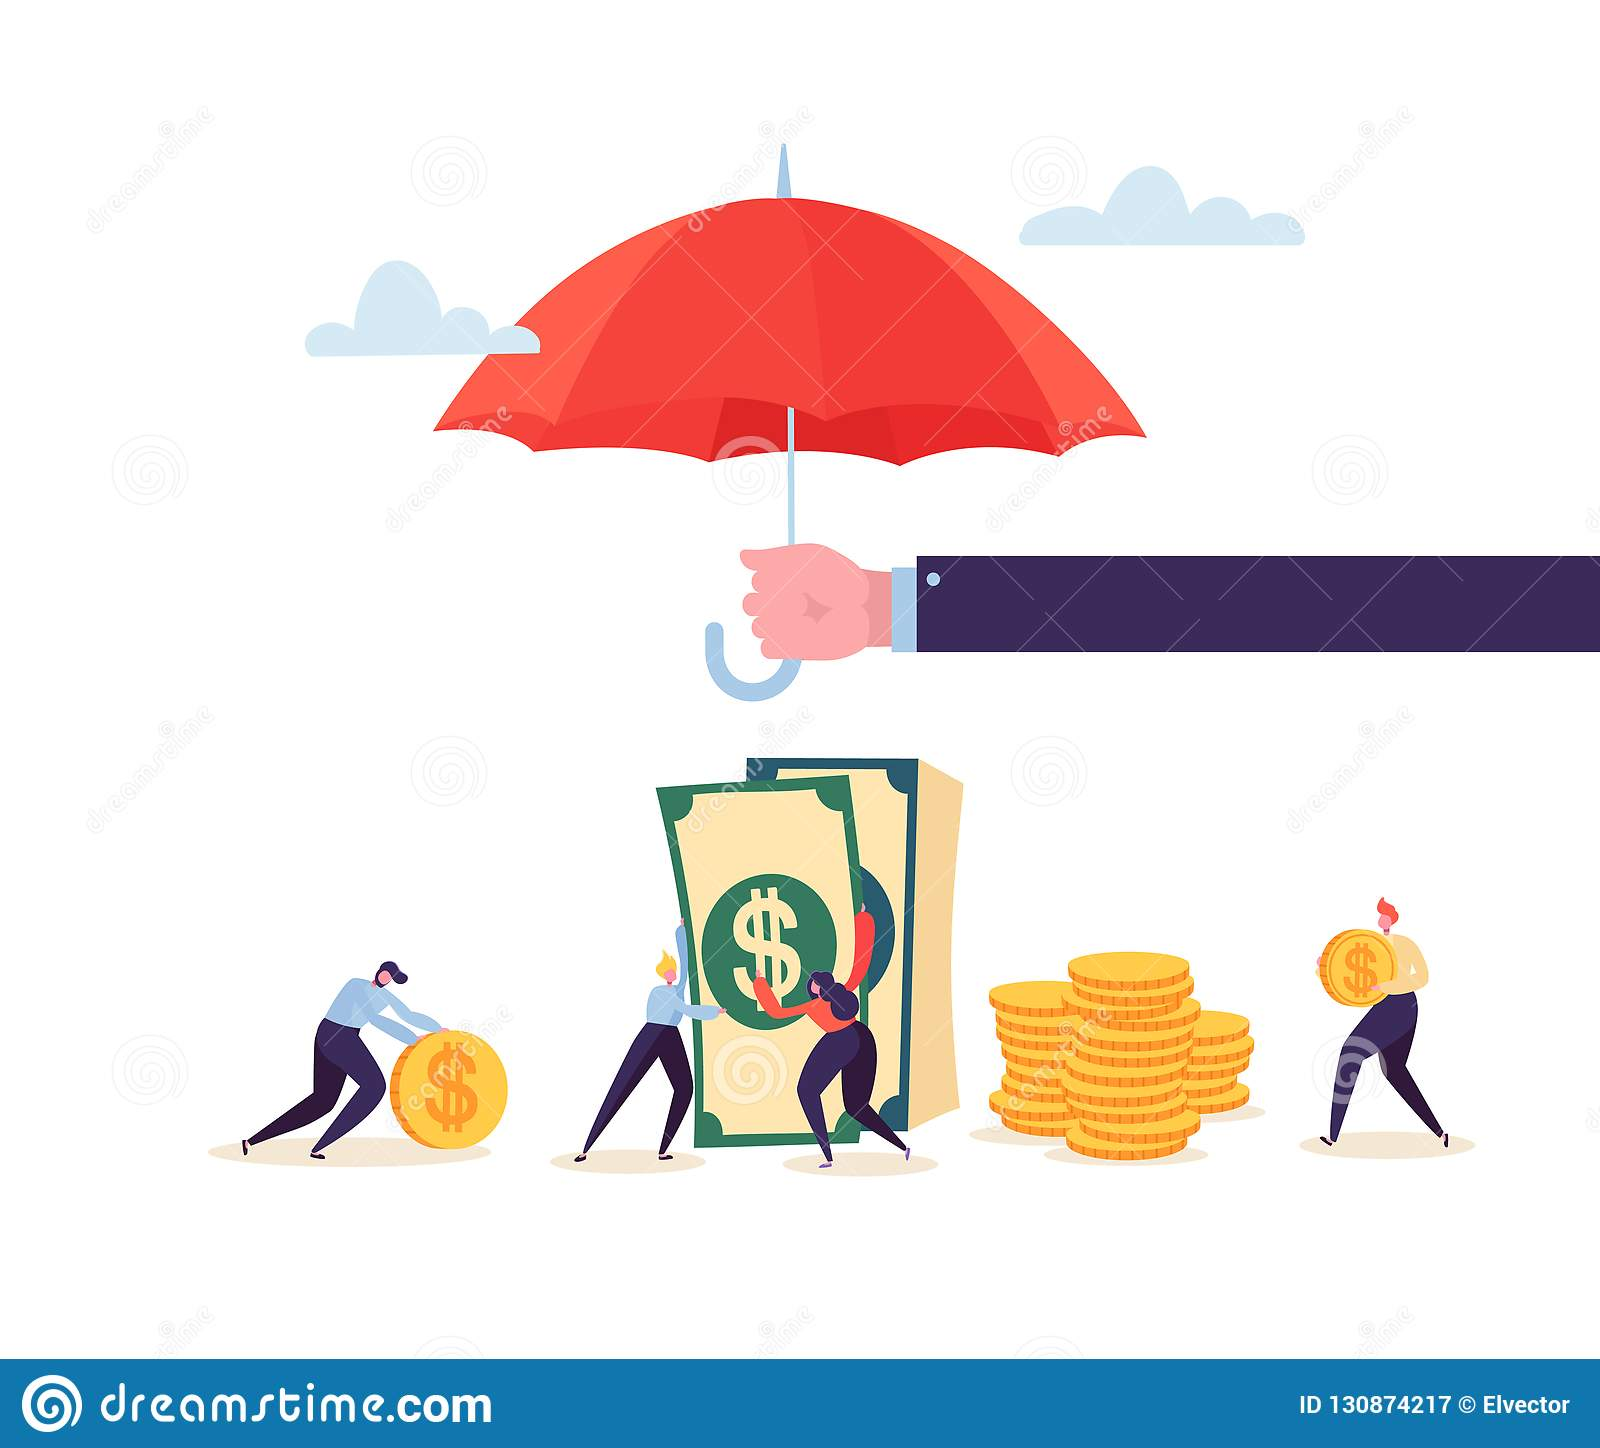 4c2c7dad1d48b Insurance Agent Holding Umbrella Over Money Savings Financial Protection  Concept with Characters Collecting Golden Coins